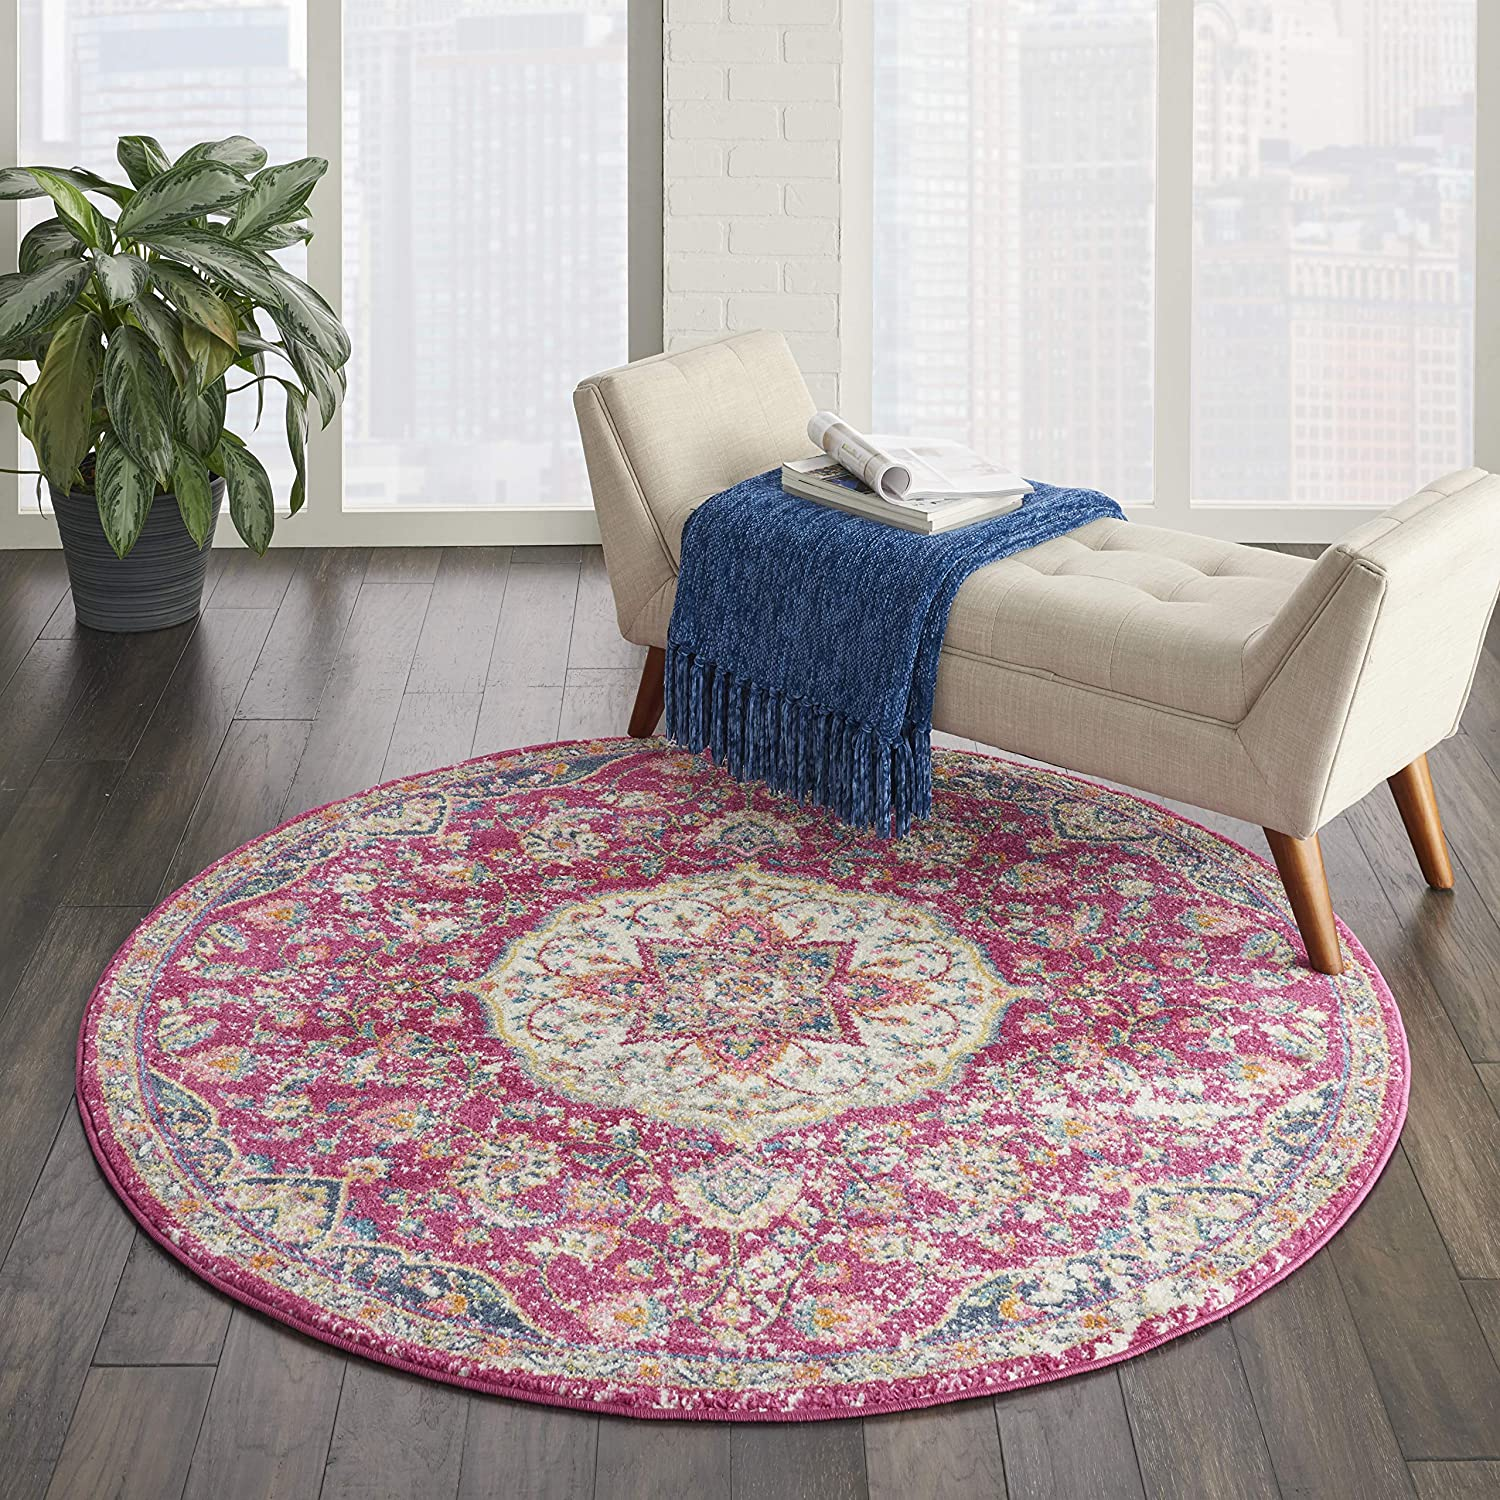 Safety and trust Max 66% OFF Nourison Passion Pink Traditional Persian Area Vintage 5'3